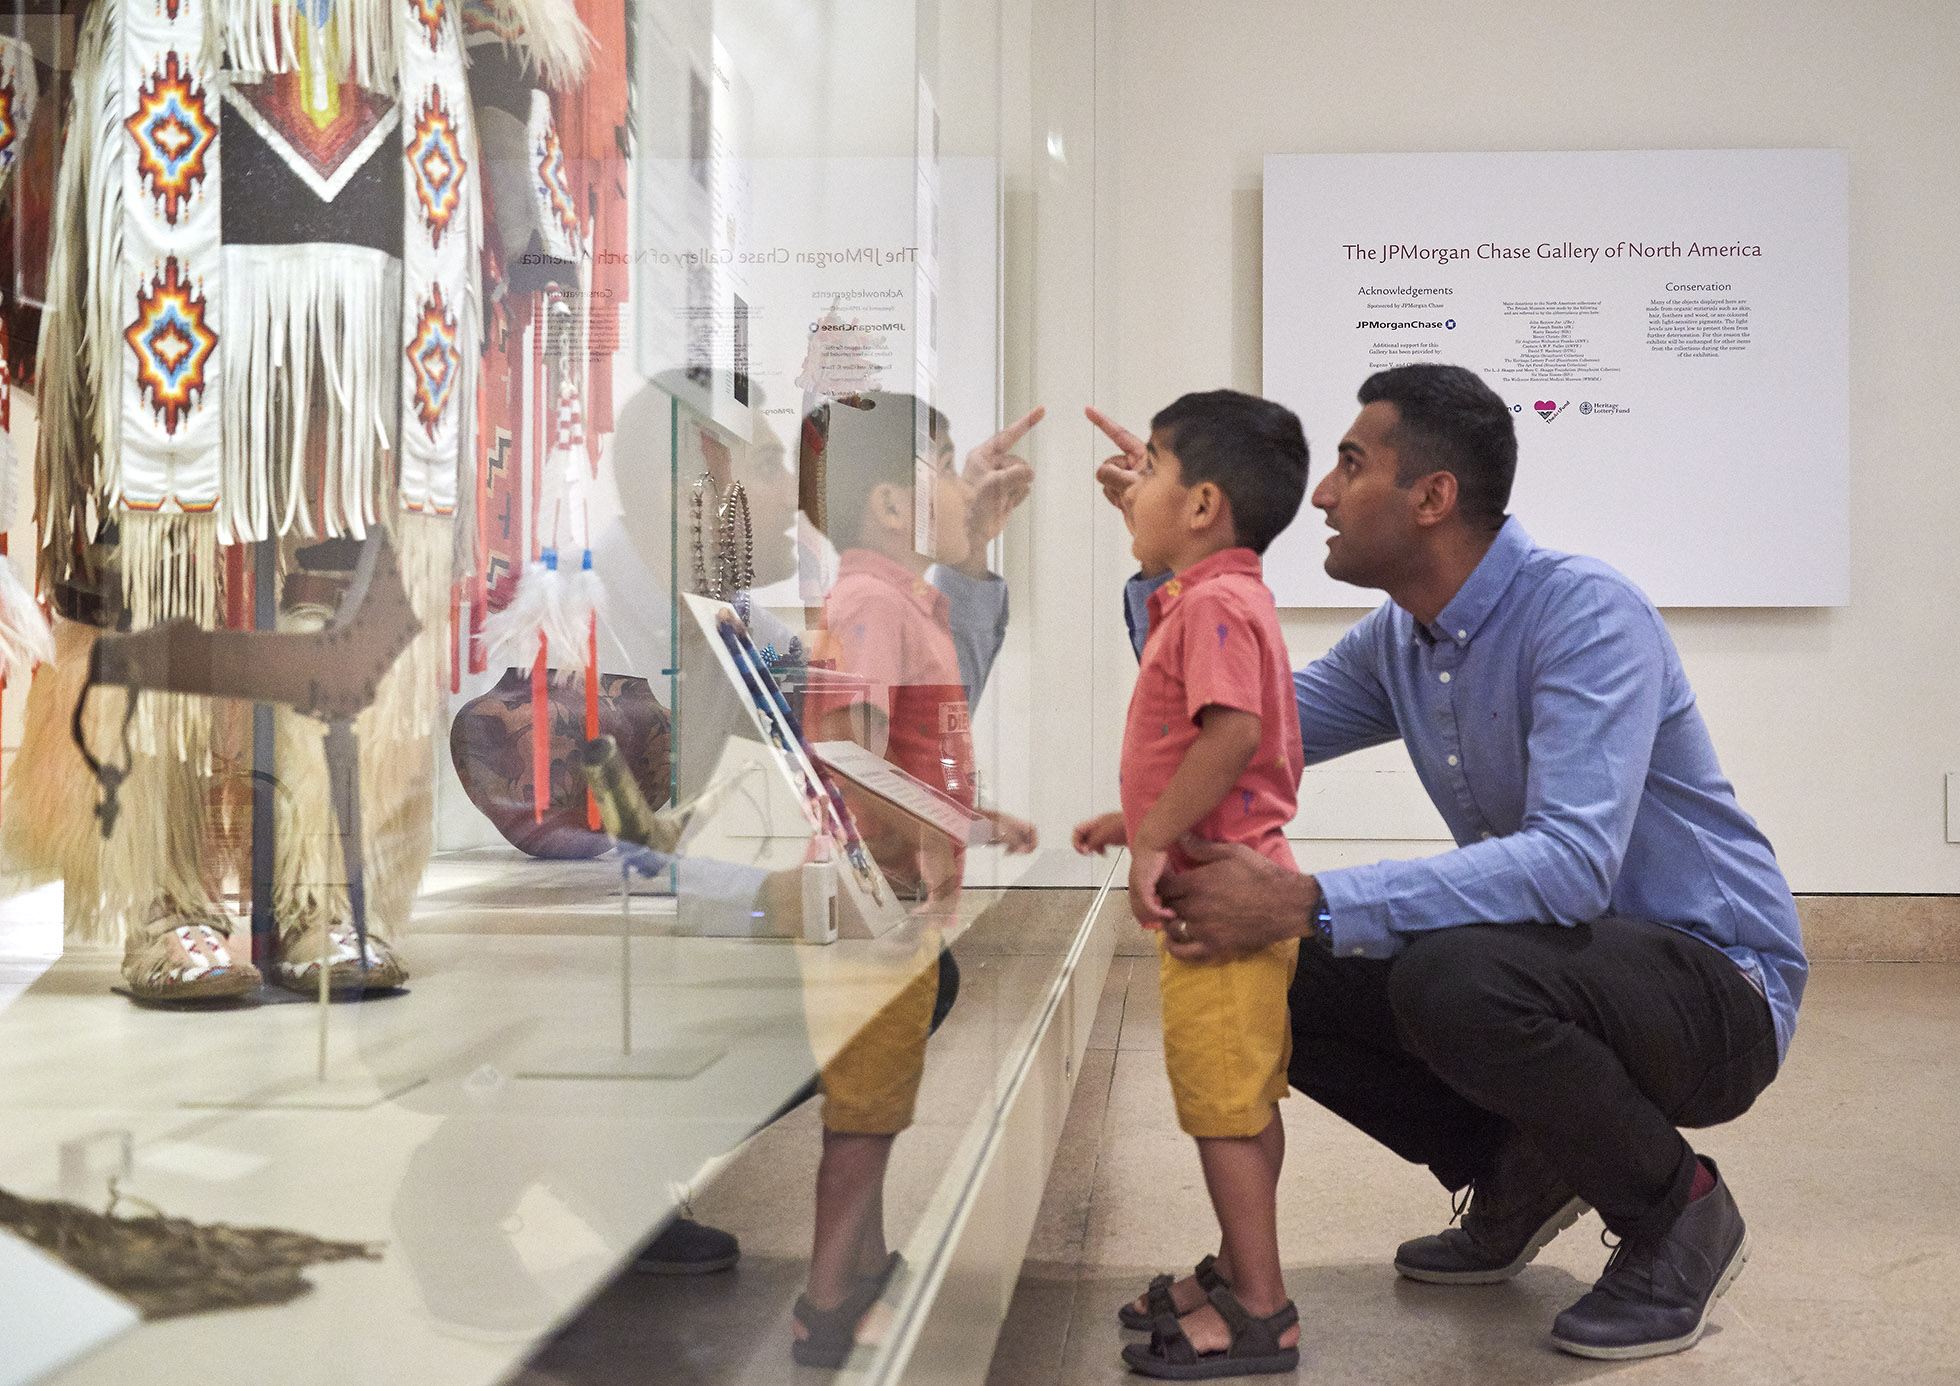 A father and son stand in front of a display case, looking at one of the objects inside.